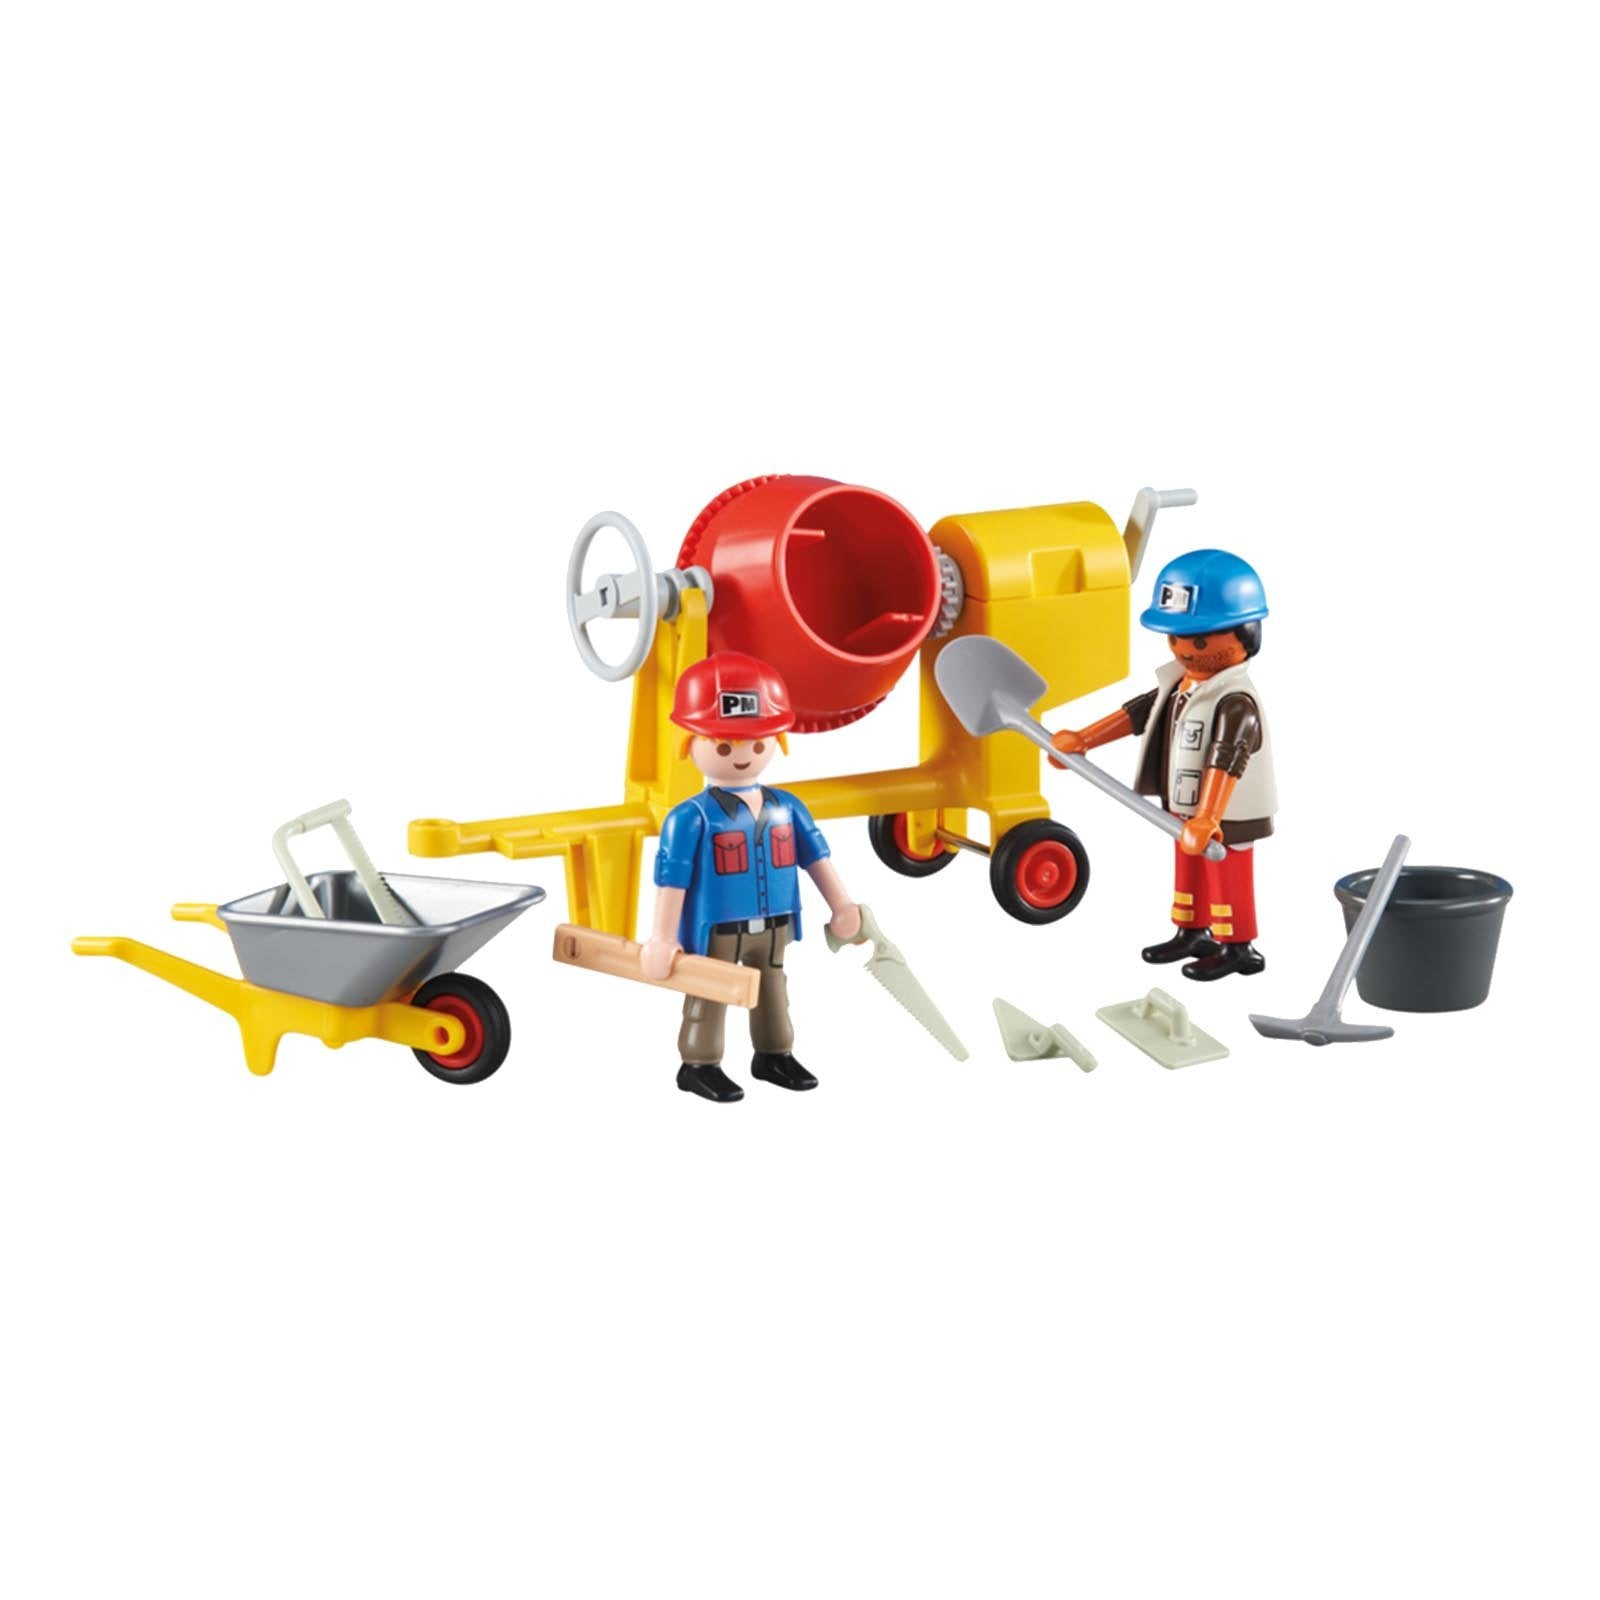 Playmobil 2 Construction Workers Building Set 6339